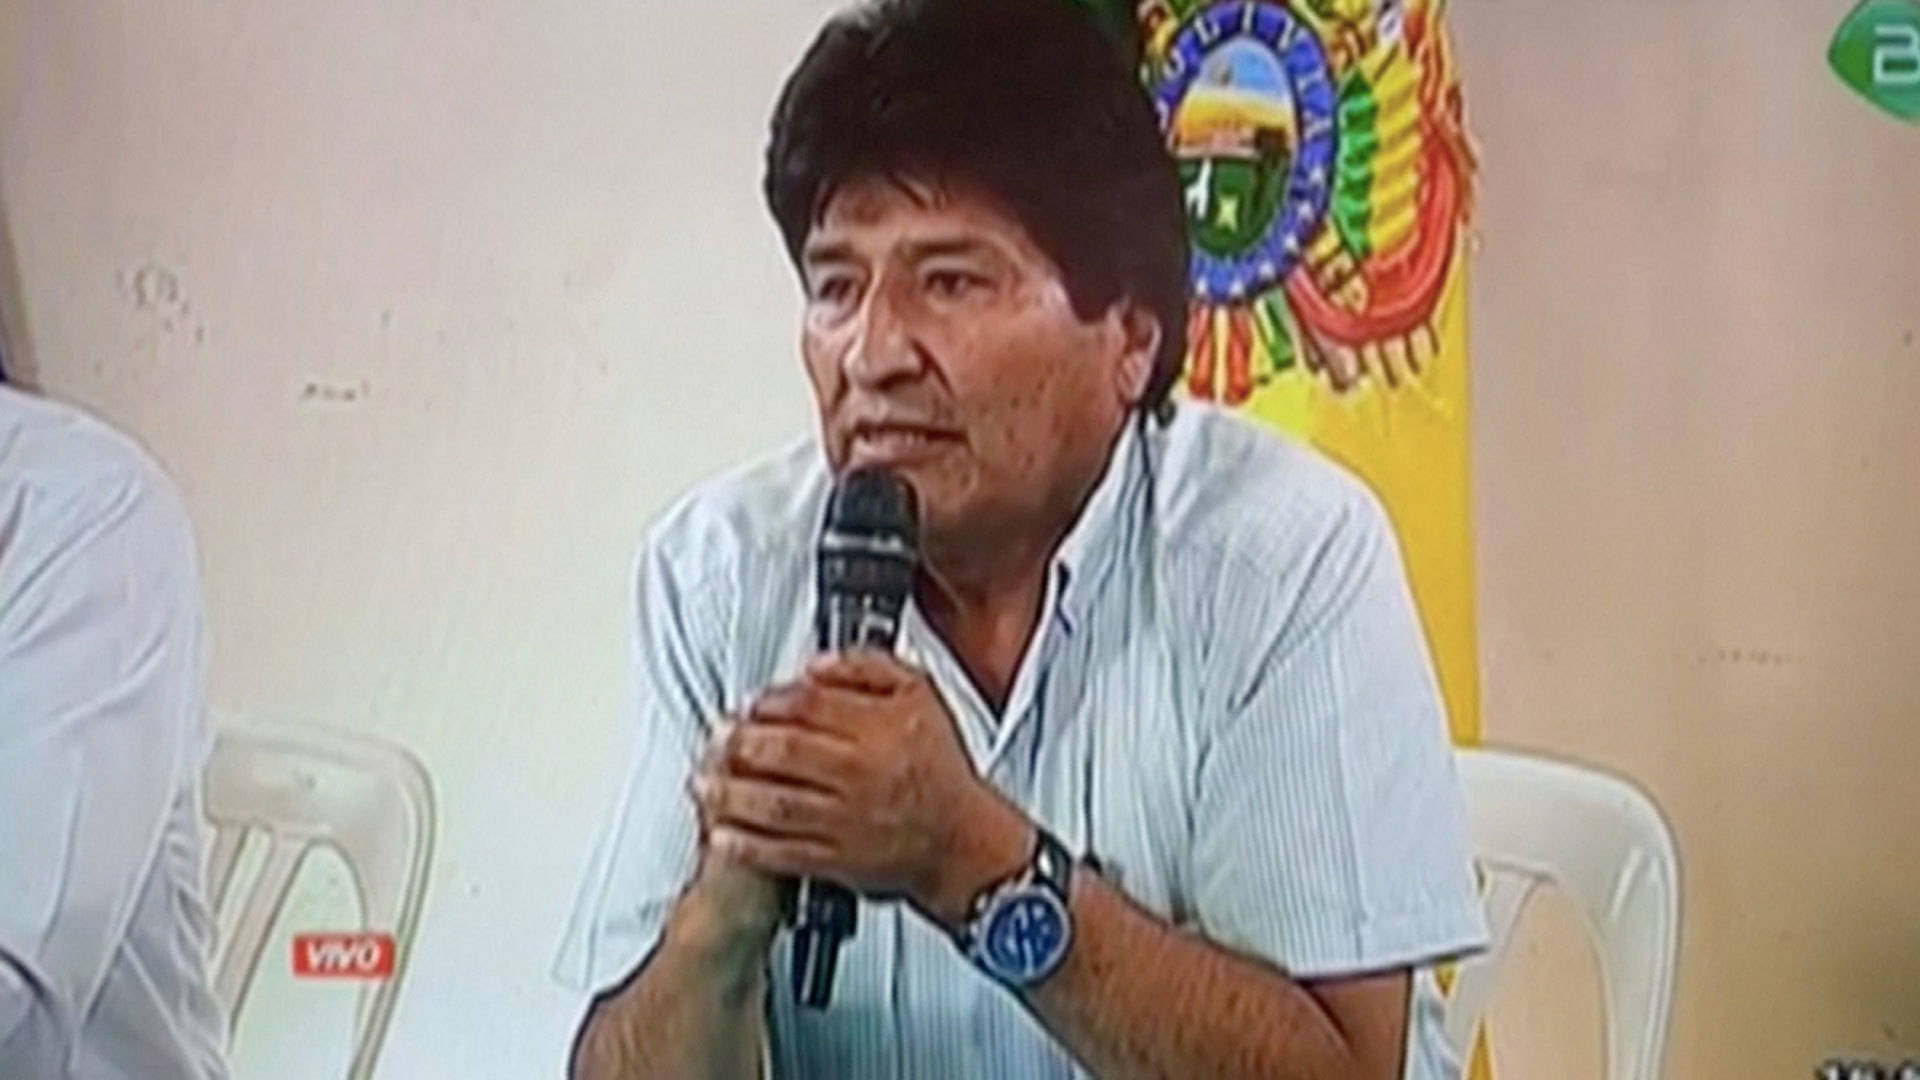 """This Is a Military Coup"": Bolivian President Evo Morales Resigns After Army Calls For His Ouster"